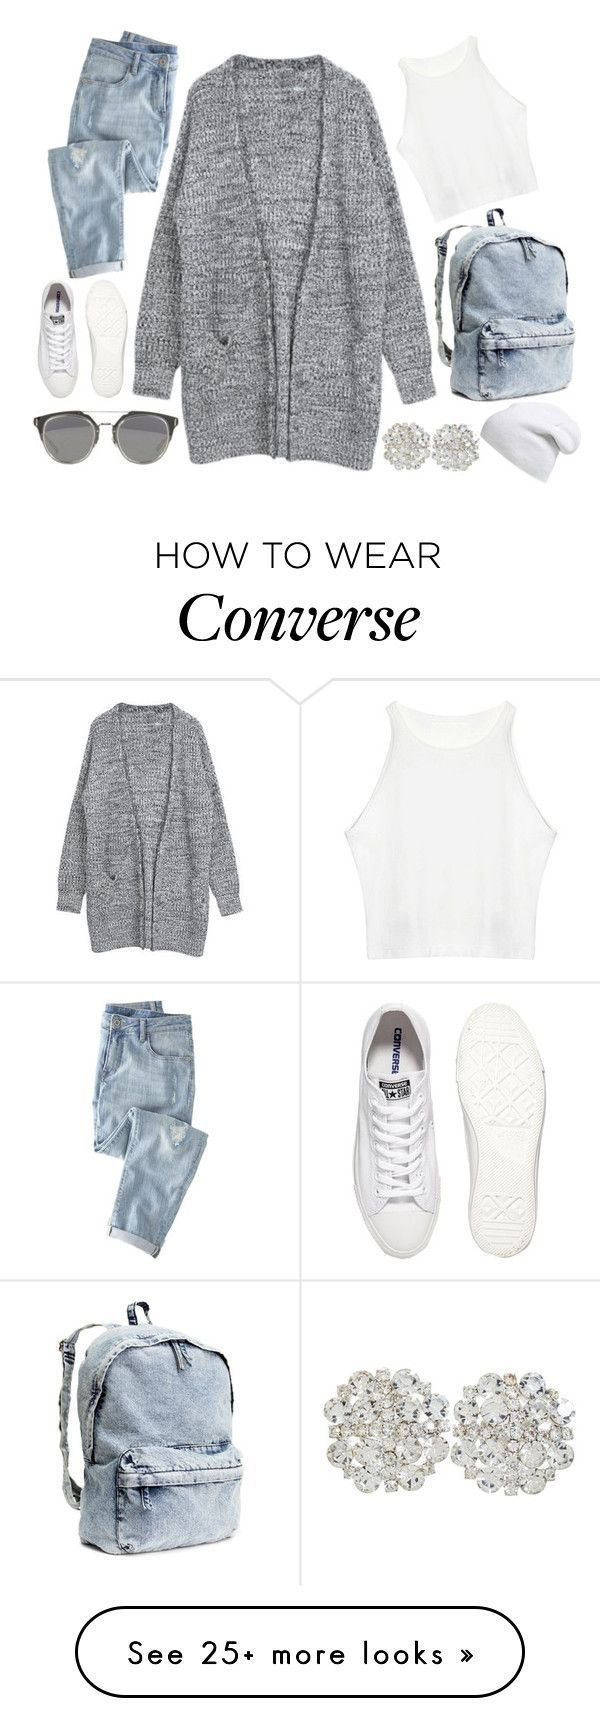 """""""Cooler Than Cool"""" by nenedopesauce on Polyvore featuring Wrap, Converse, H&M and Phase 3"""